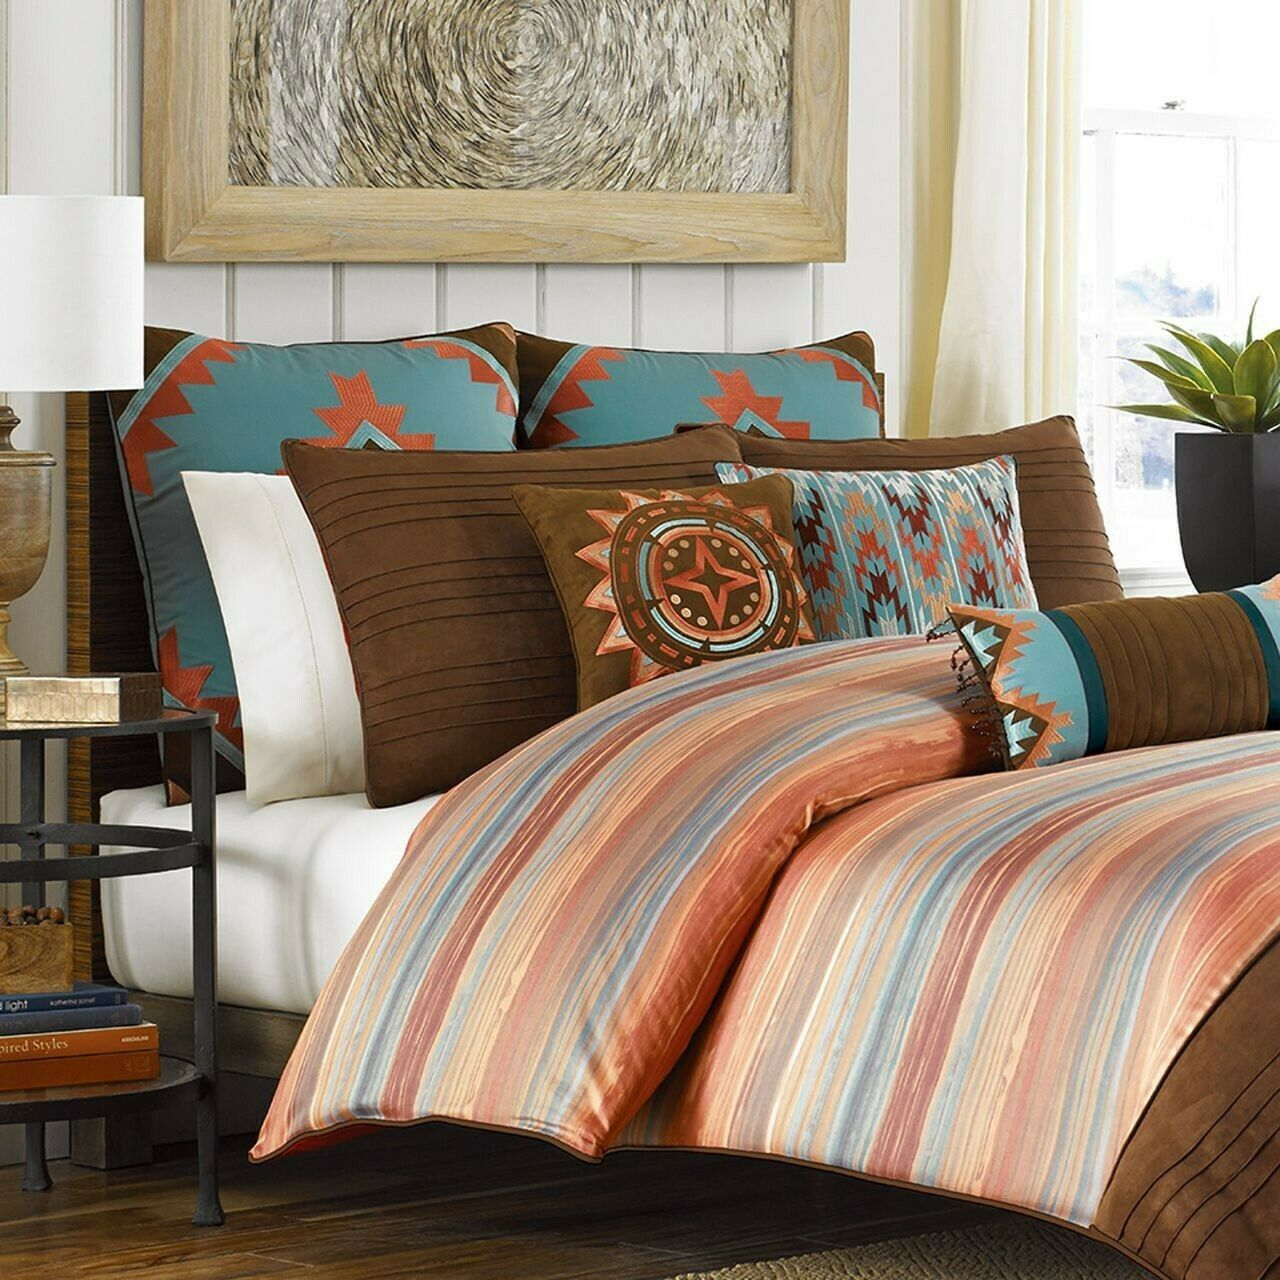 Croscill Ventura Duvet Cover Earth Tones Rust Orange Brown Twin 100 Cotton For Sale Online Ebay